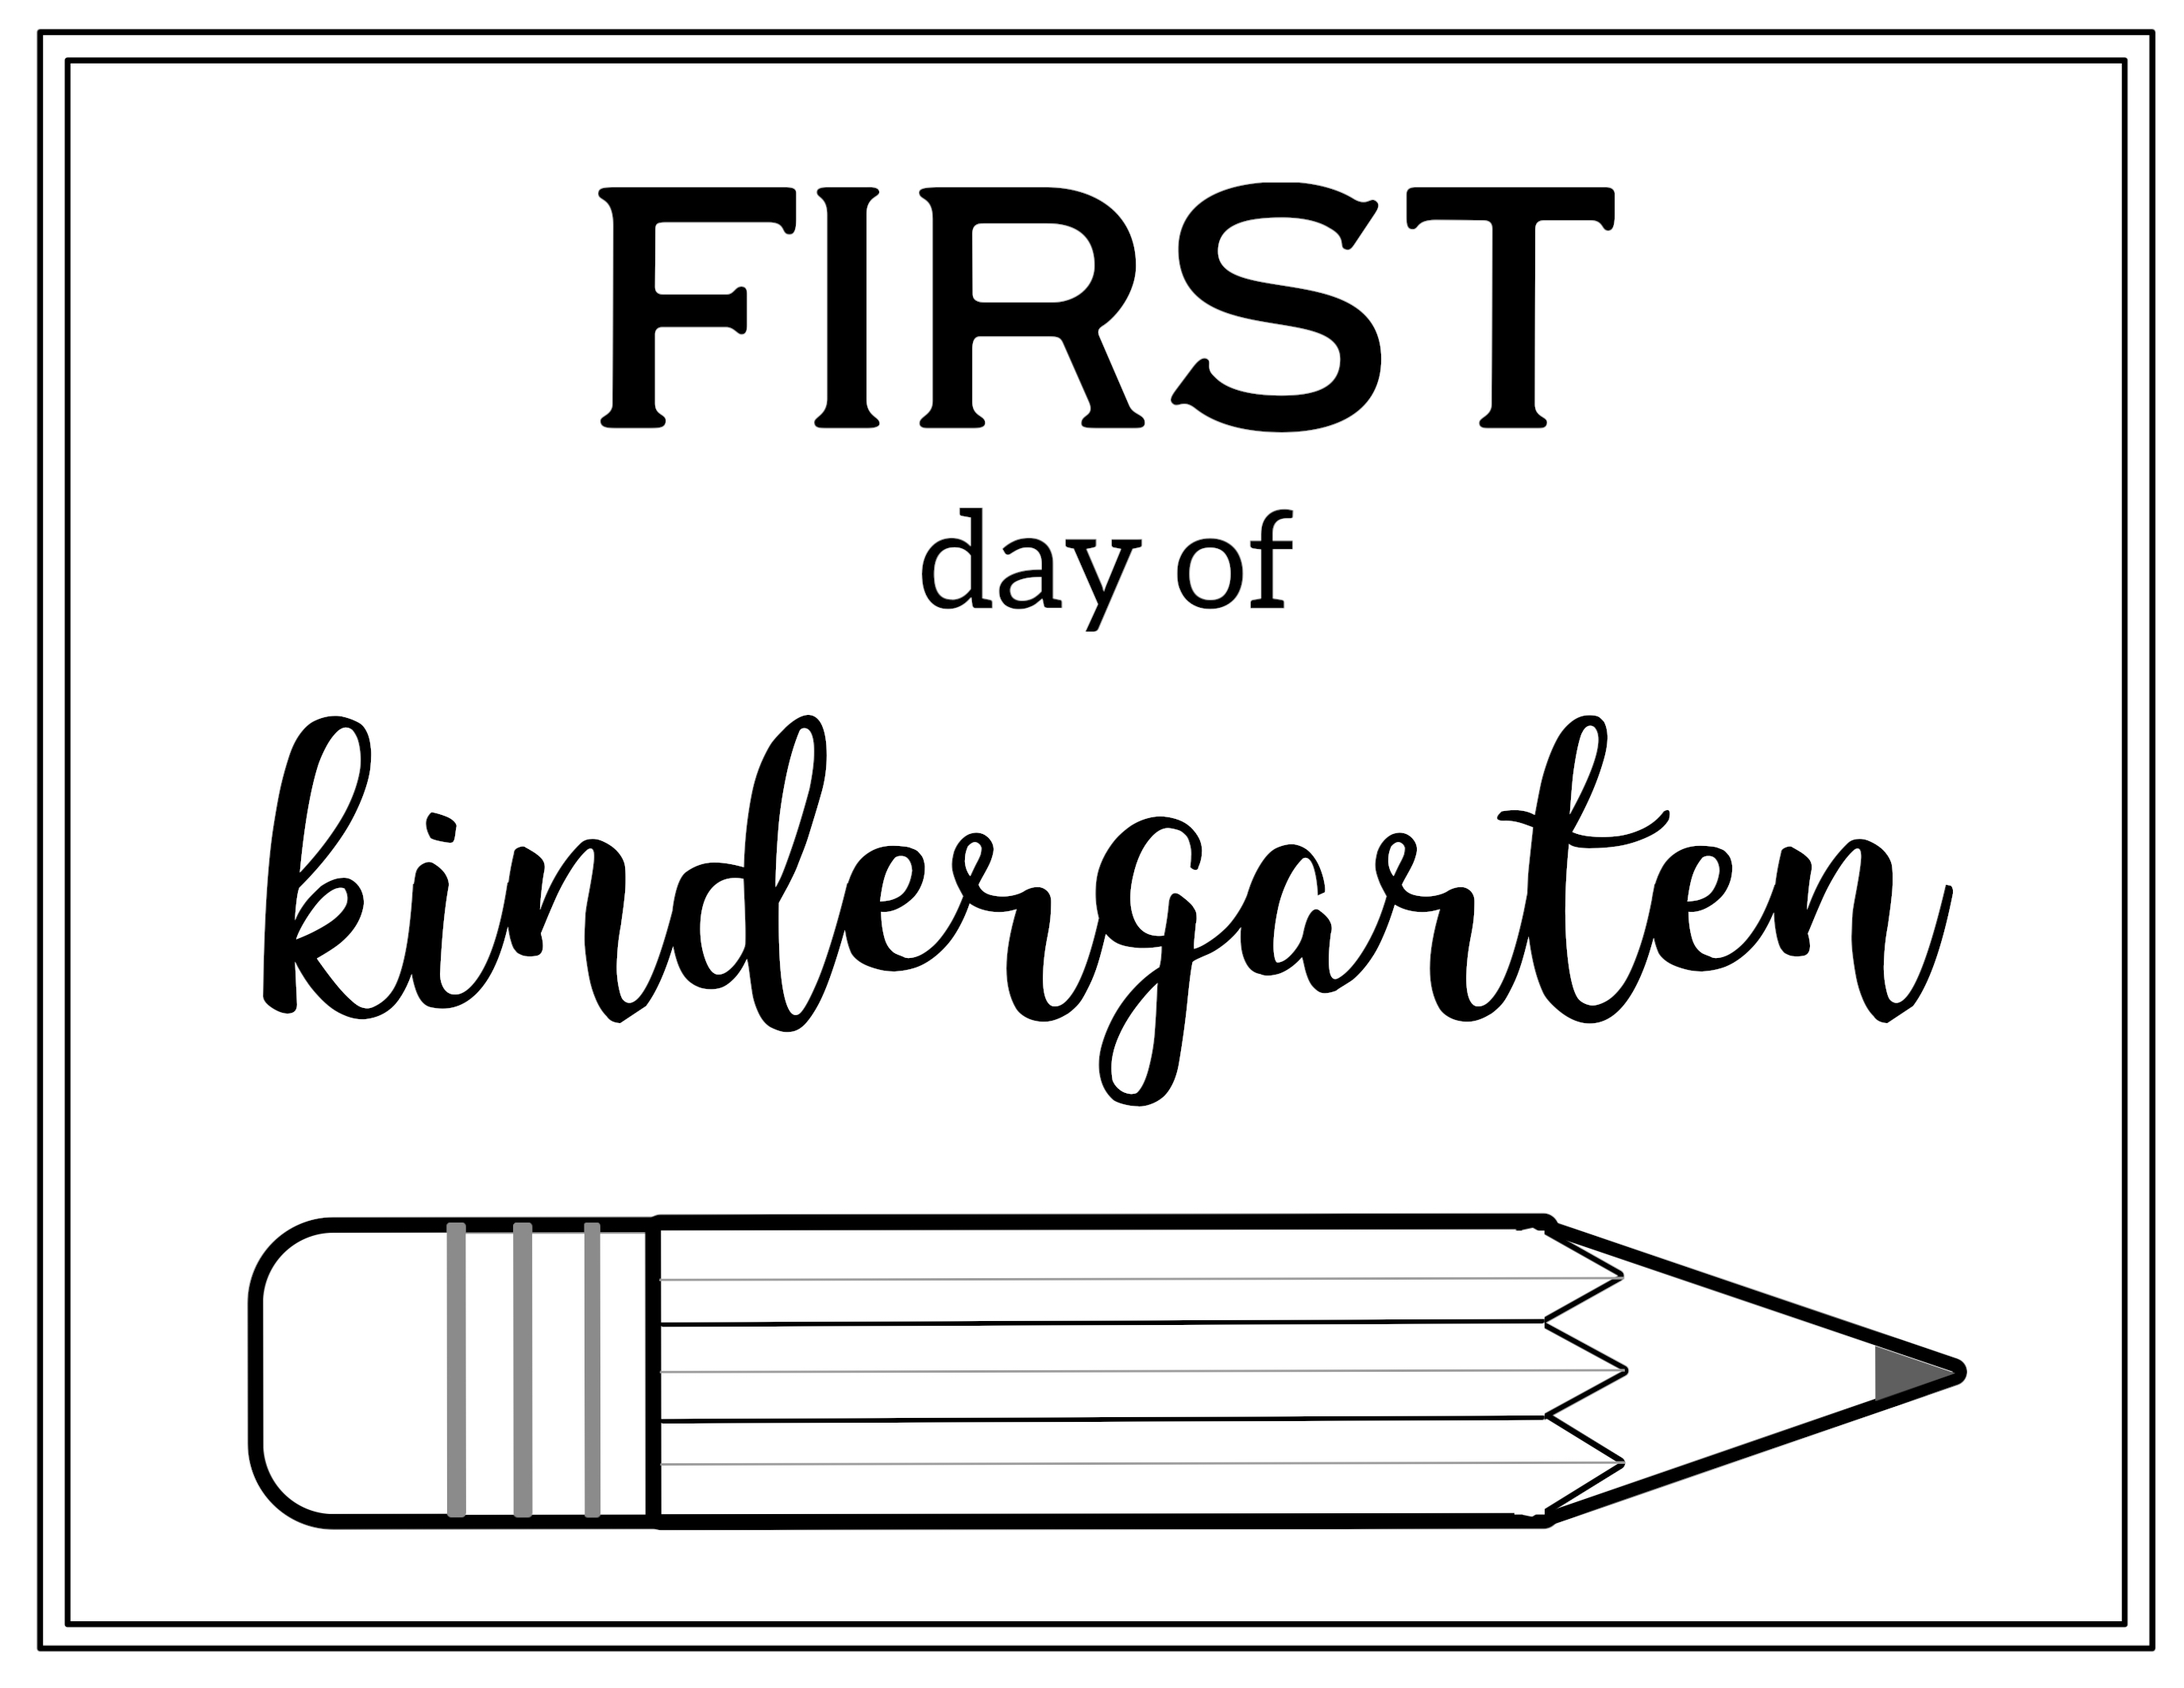 Free Printable First Day Of School Sign Pencil Paper Trail Design